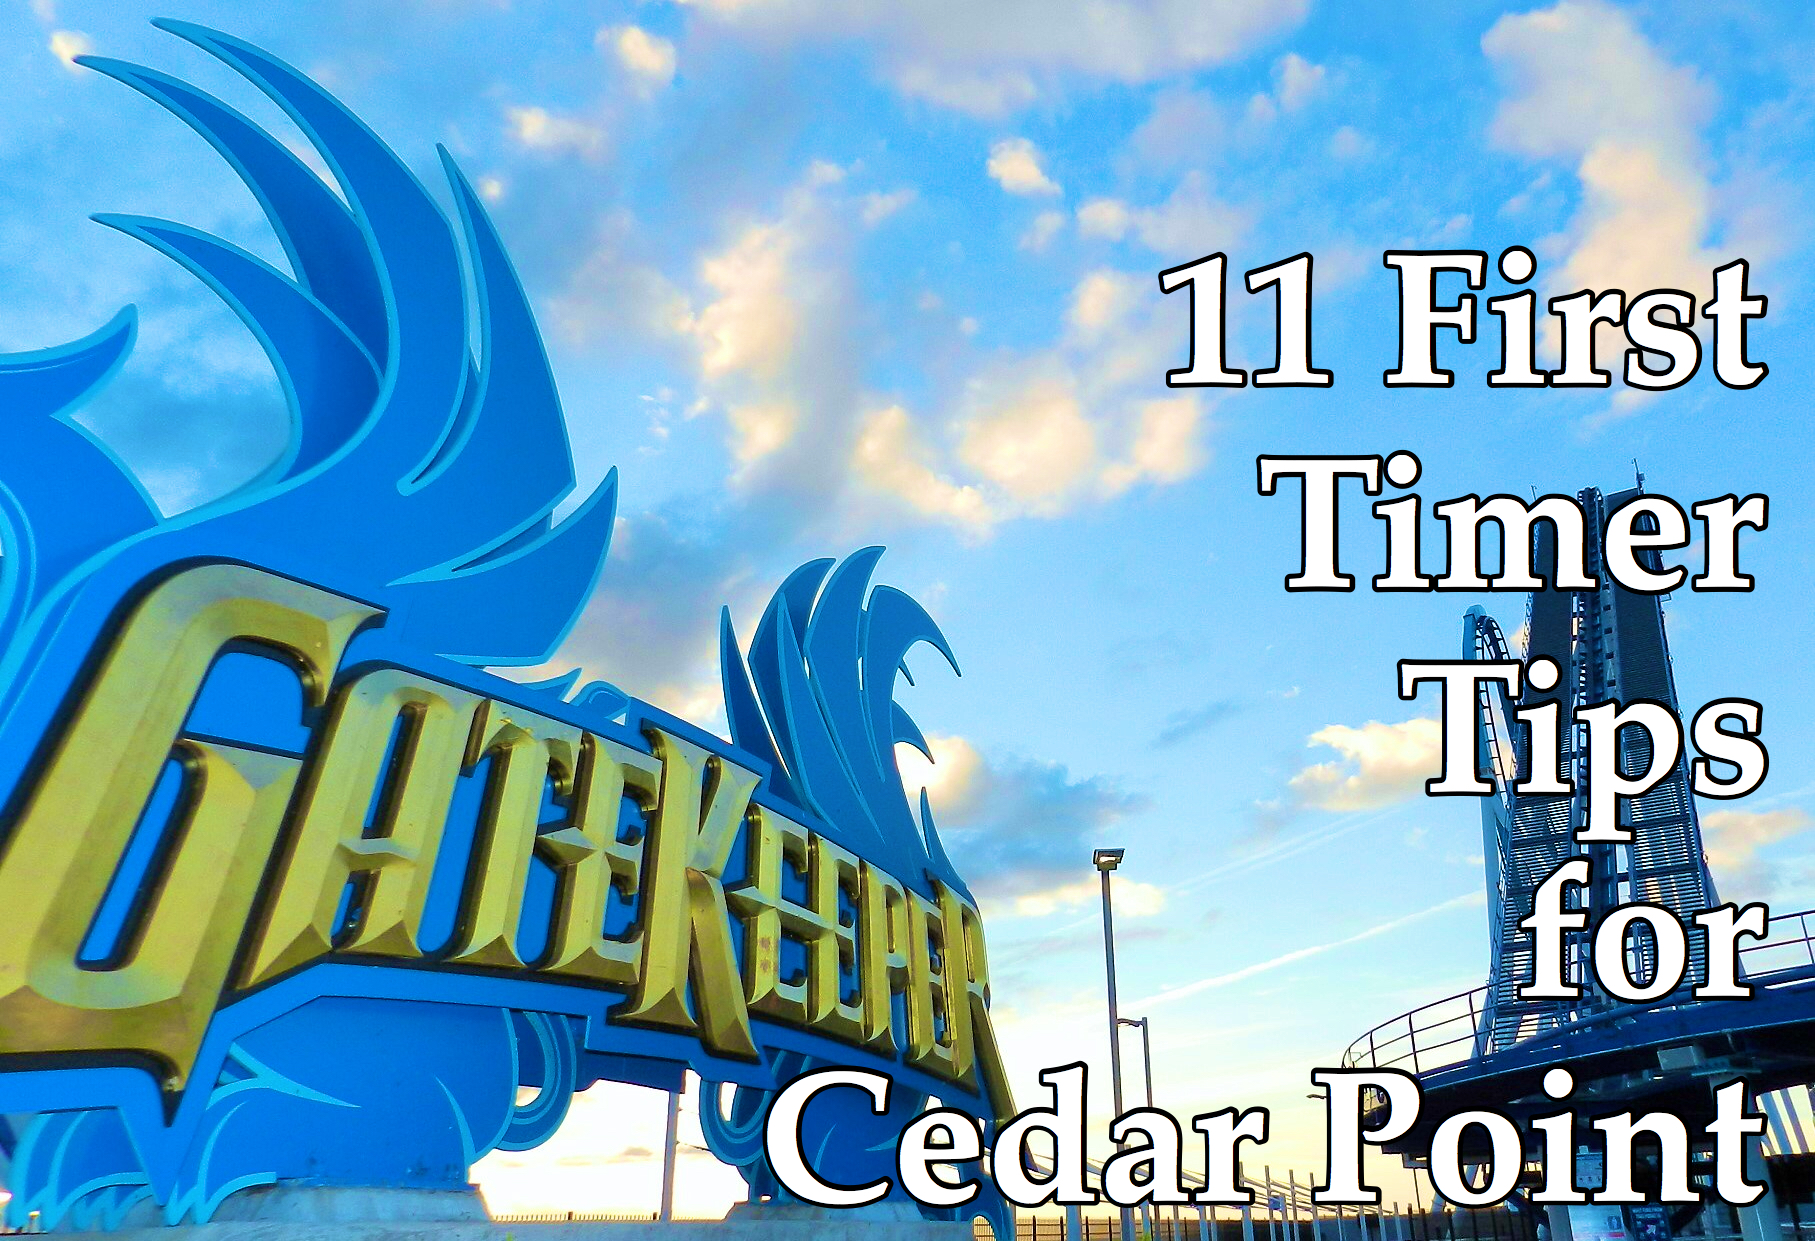 First Timer Tips for Cedar Point